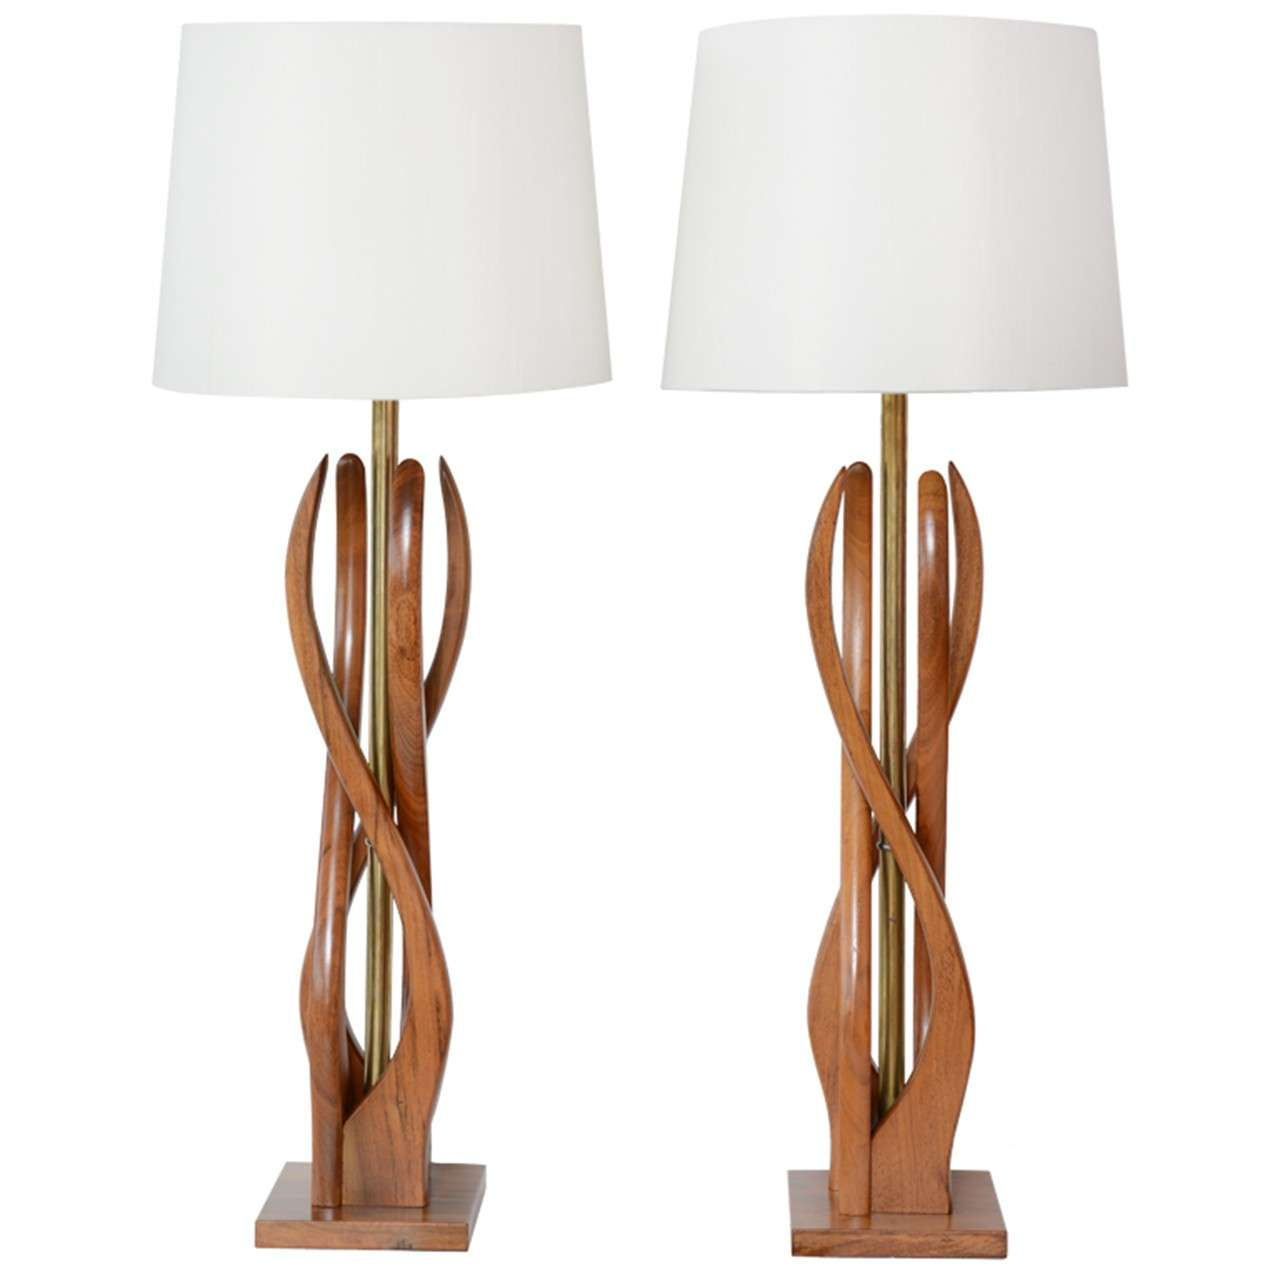 Beautiful Mid Century Modern Danish Style Teak Wood Table Lamps 1. Beautiful Mid Century Modern Danish Style Teak Wood Table Lamps at